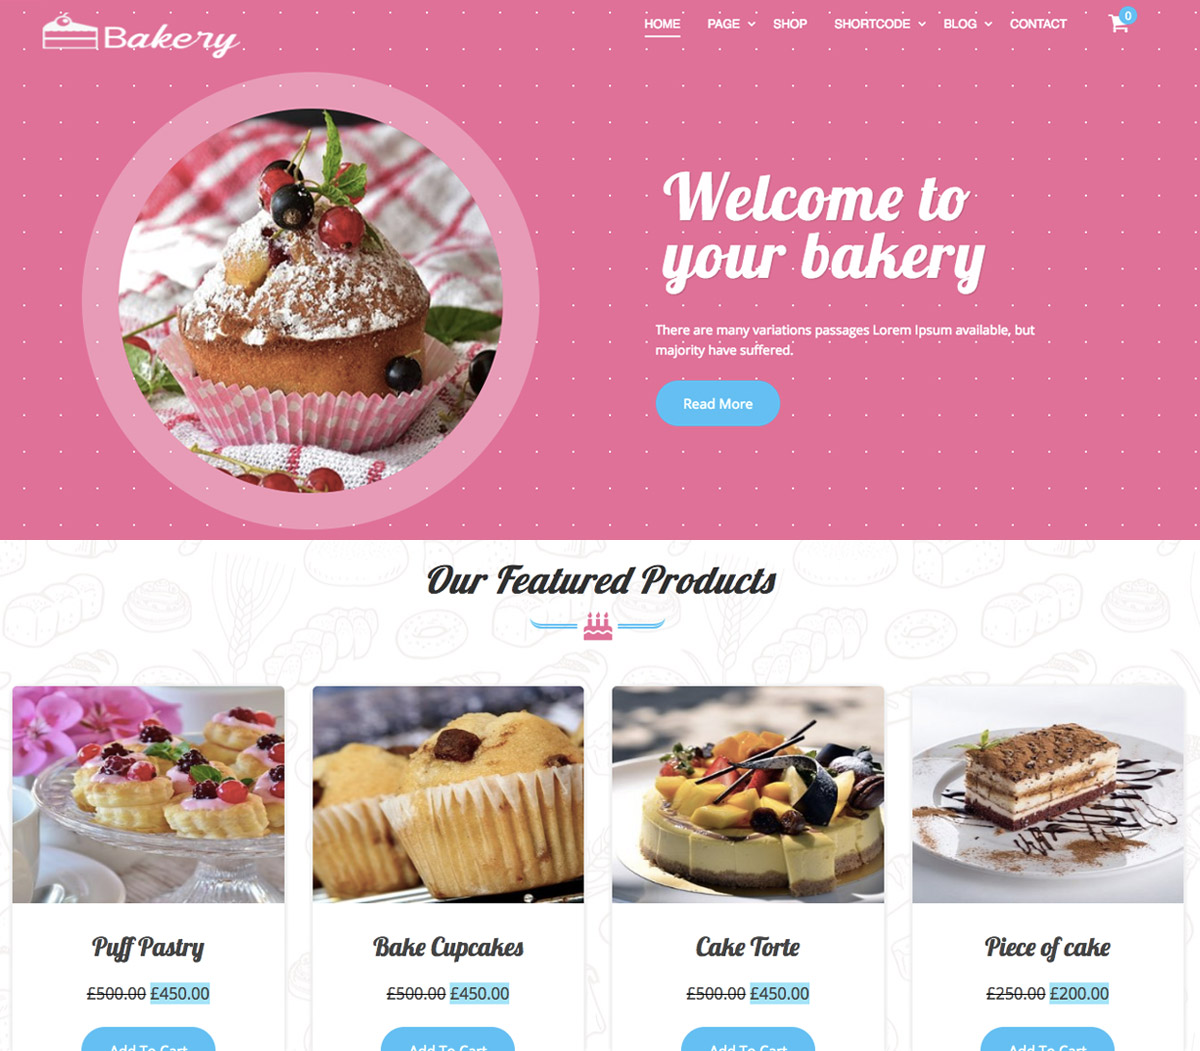 Best Free Bakery WordPress Theme for Bakers & Cake Shops